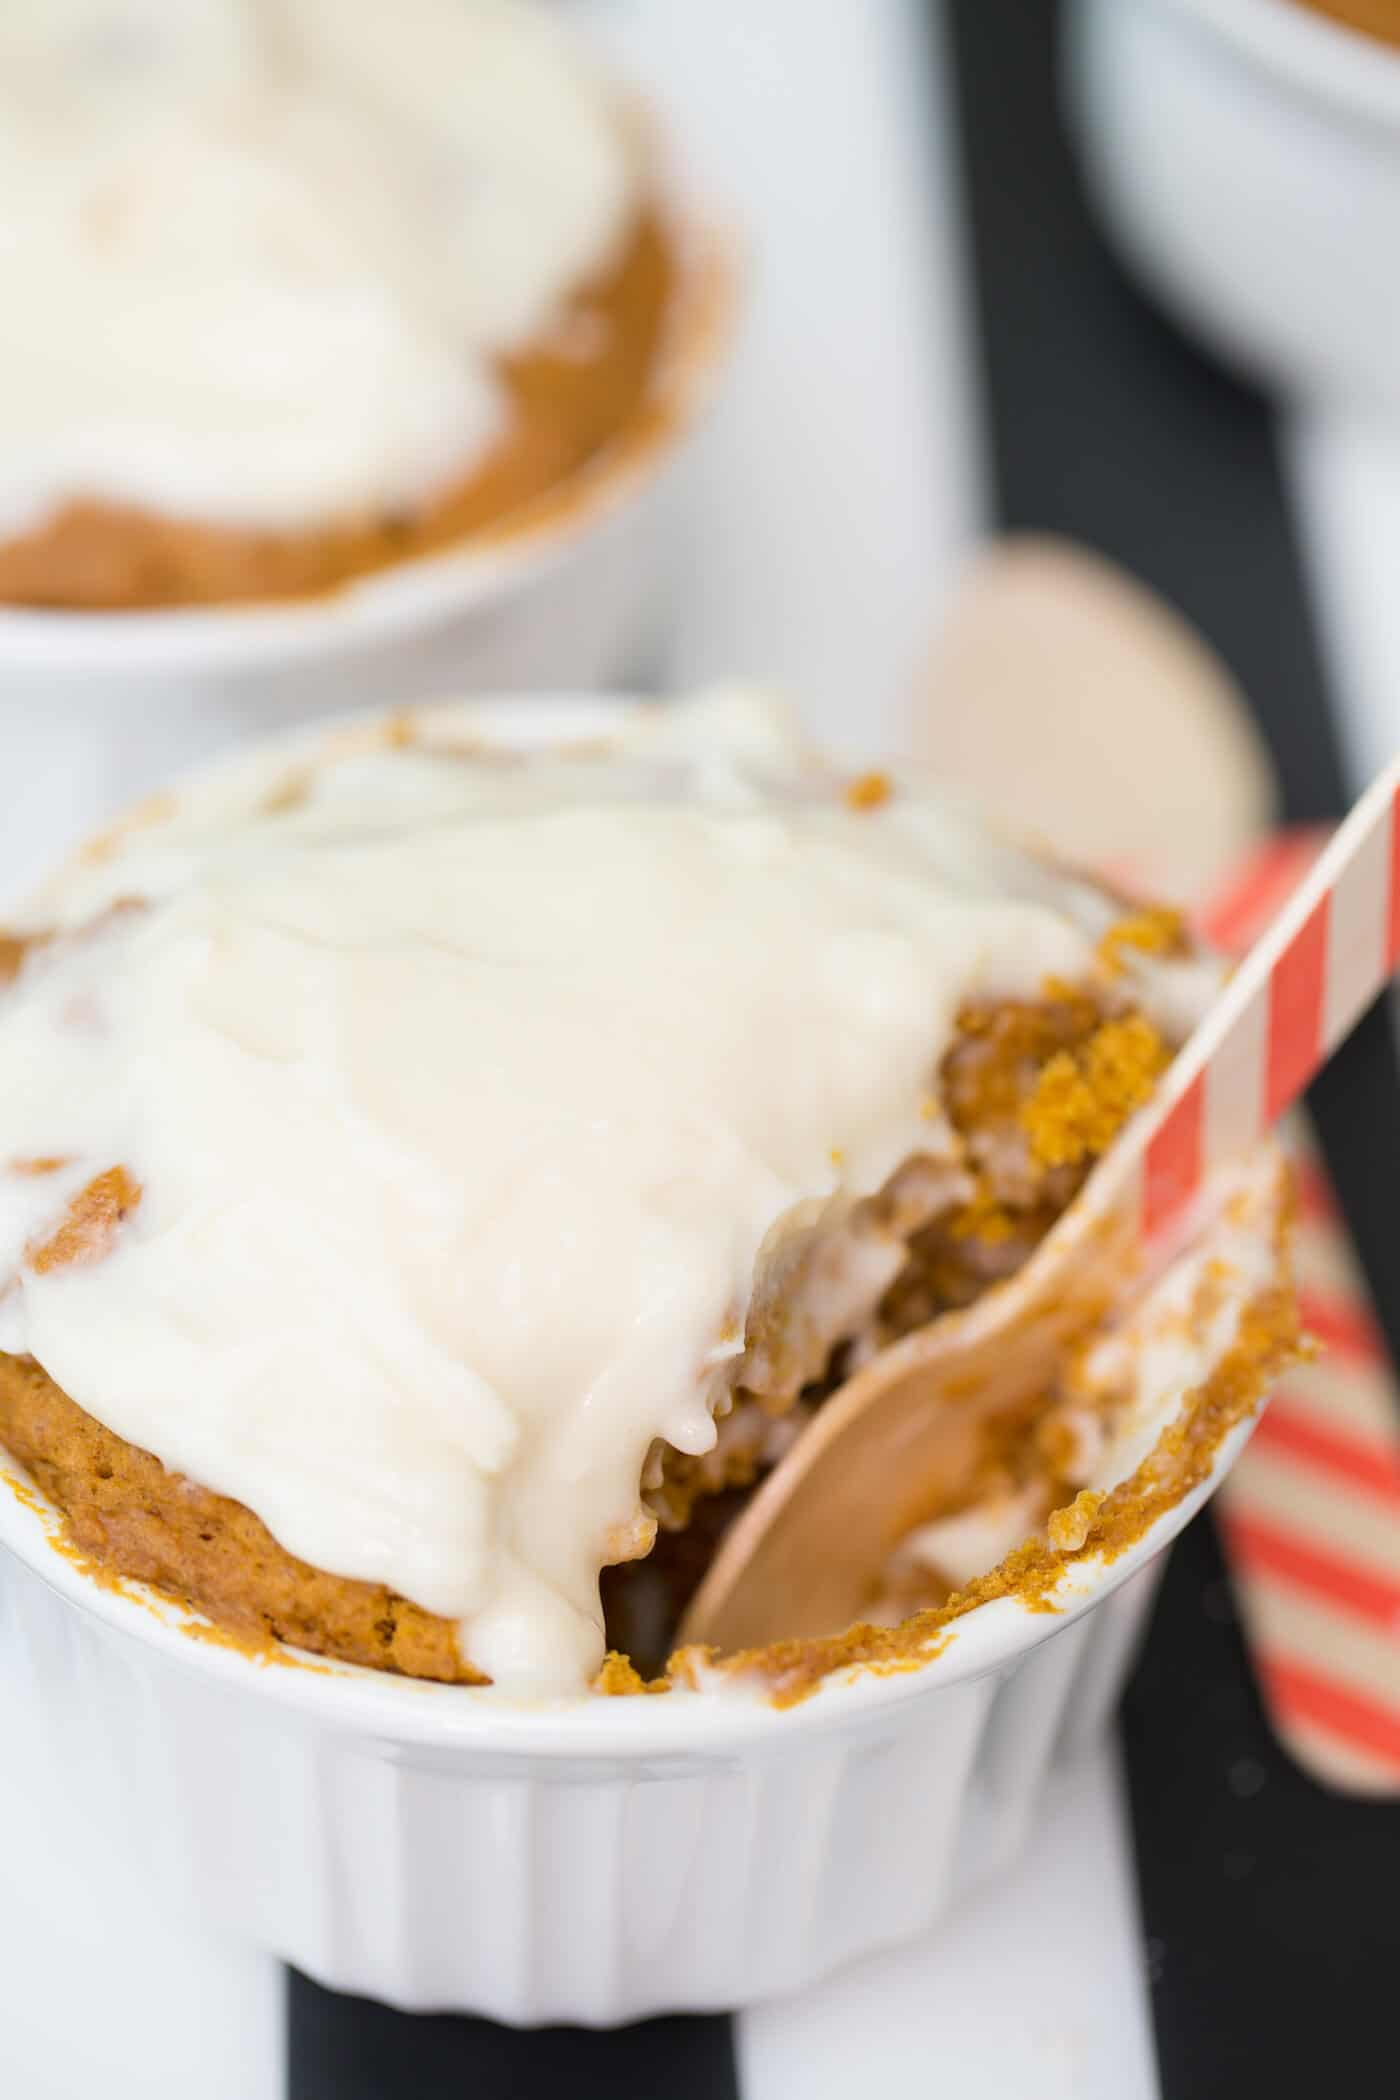 You'll love this pumpkin spice mug cake recipe! Transform a few ingredients into a tasty treat that can be baked right in your microwave in a minute.